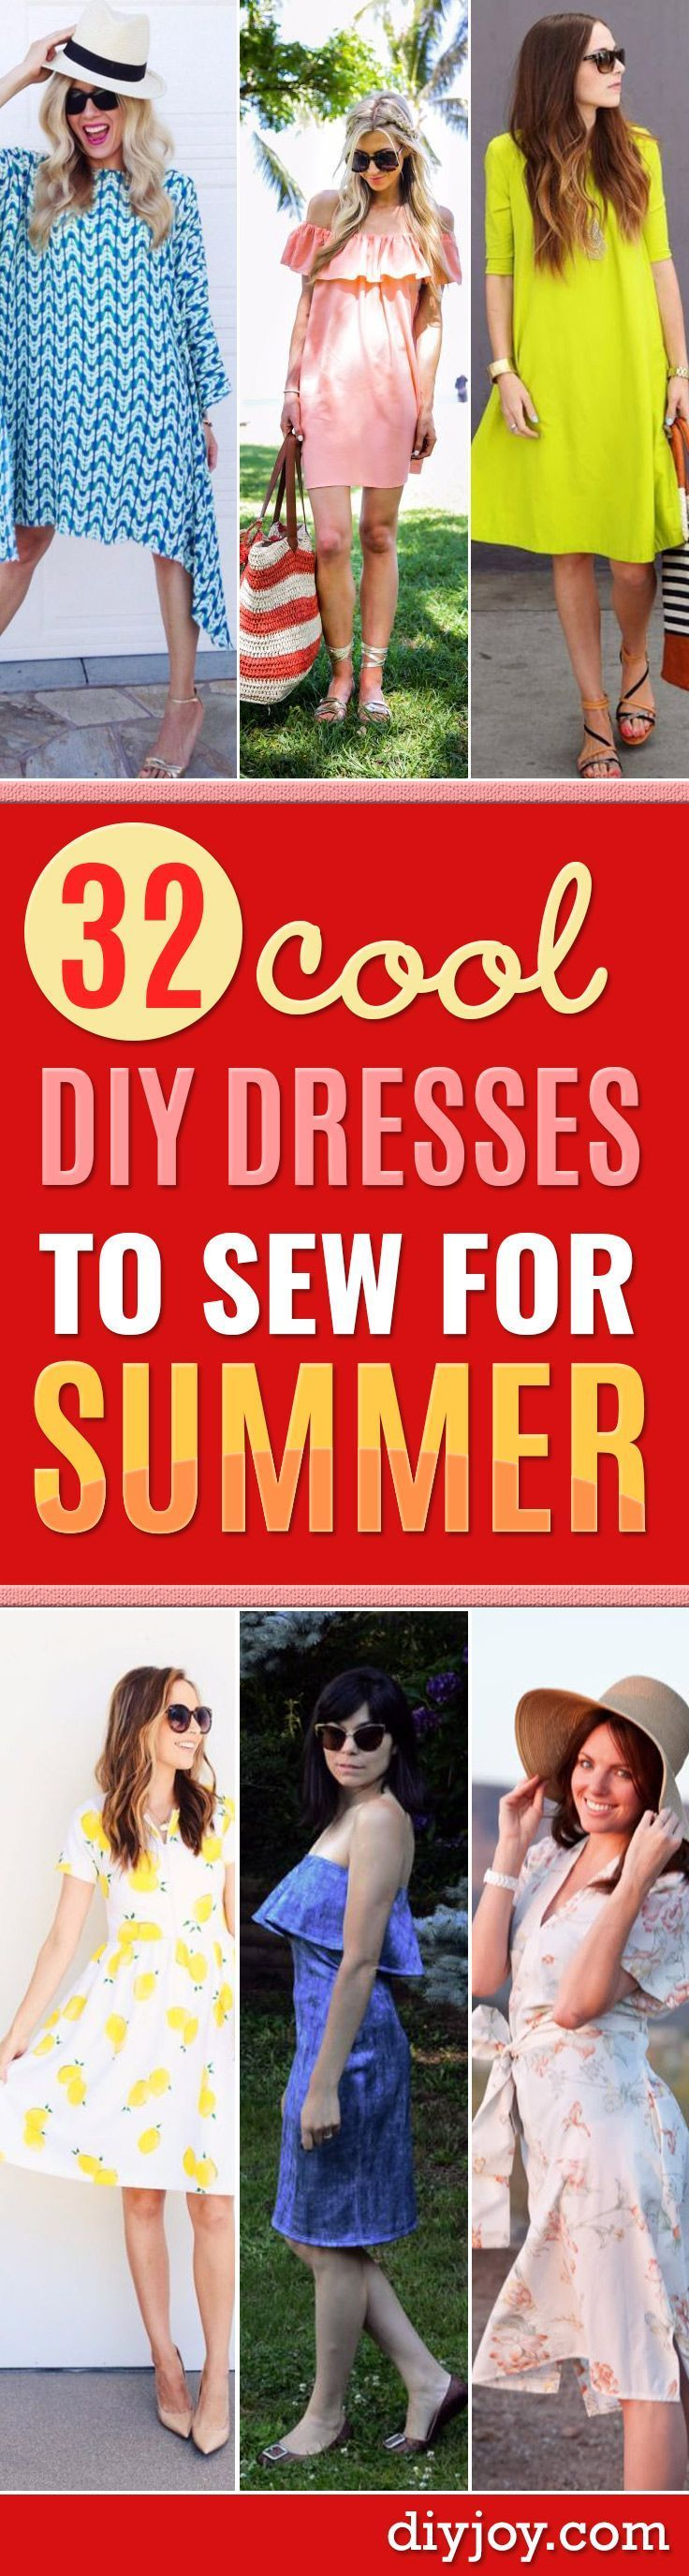 DIY Dresses to Sew for Summer - Best Free Patterns For Dress Ideas - Easy and Cheap Clothes to Make for Women and Teens - Step by Step Sewing Projects - Short, Summer, Winter, Fall, Inexpensive DIY Fashion